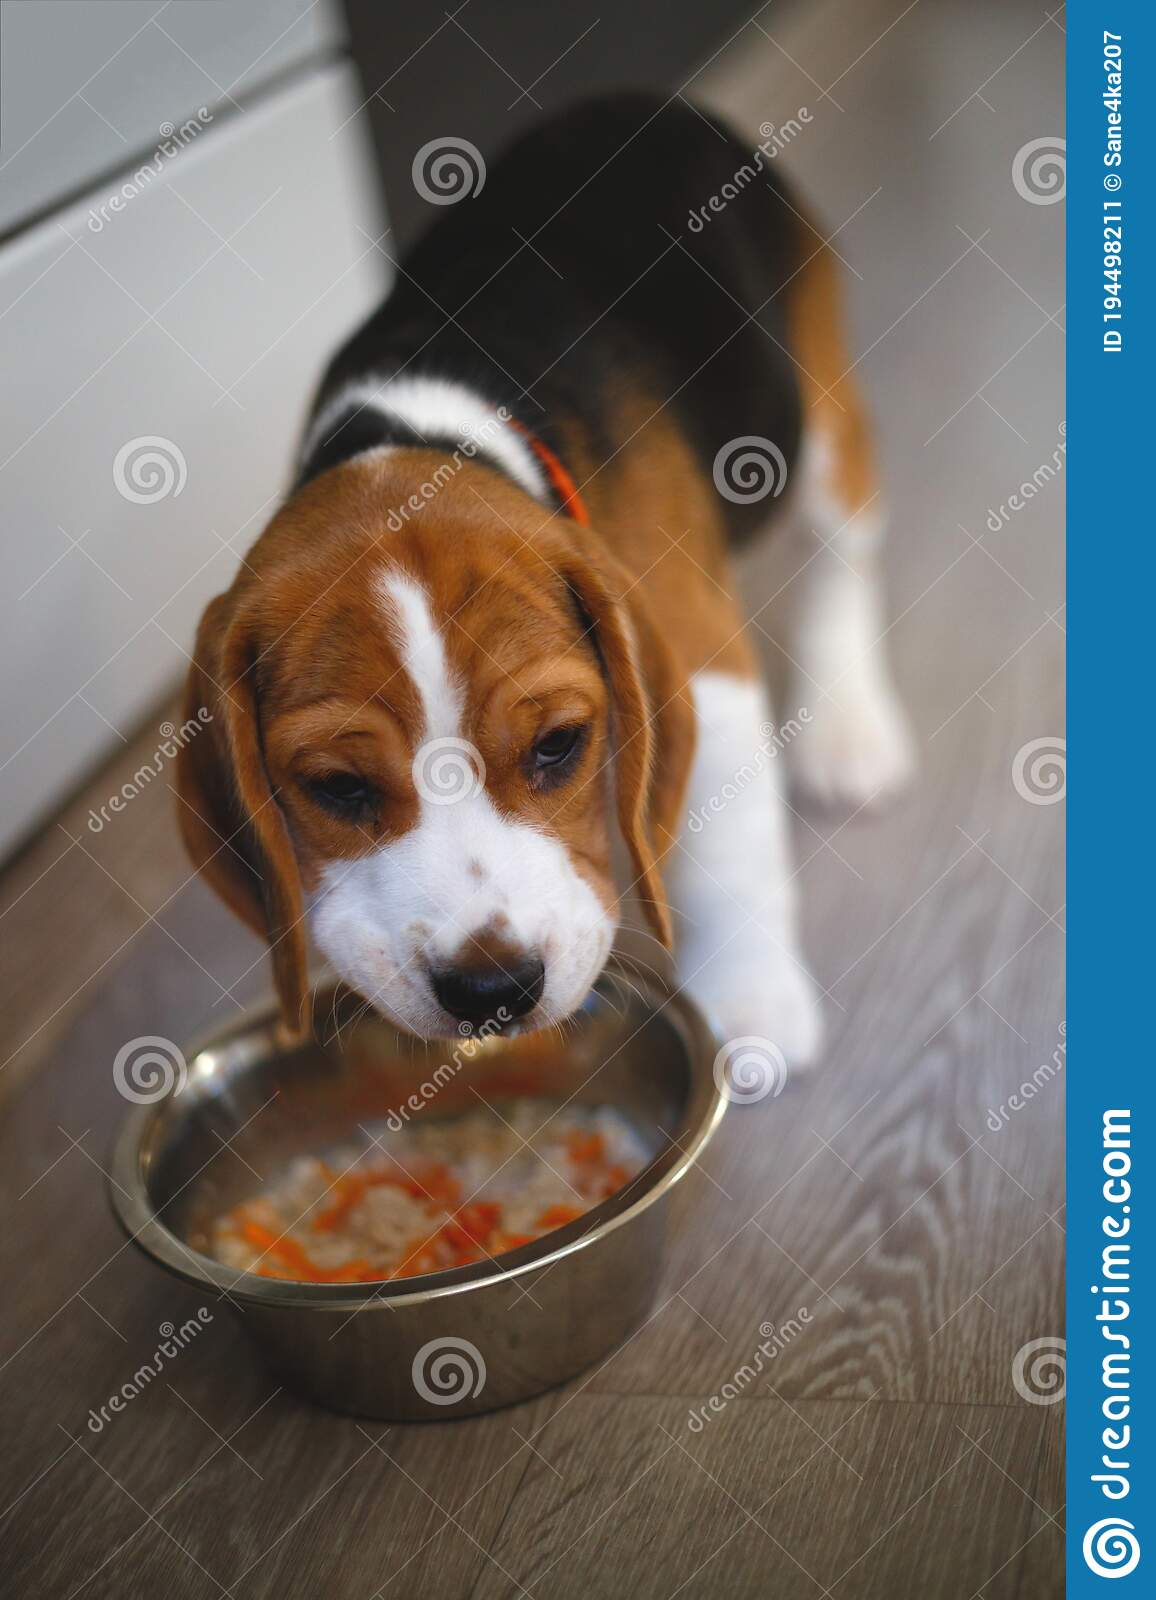 Beagle Puppy Eating Natural Food From A Bowl Stock Image Image Of British Humor 194498211